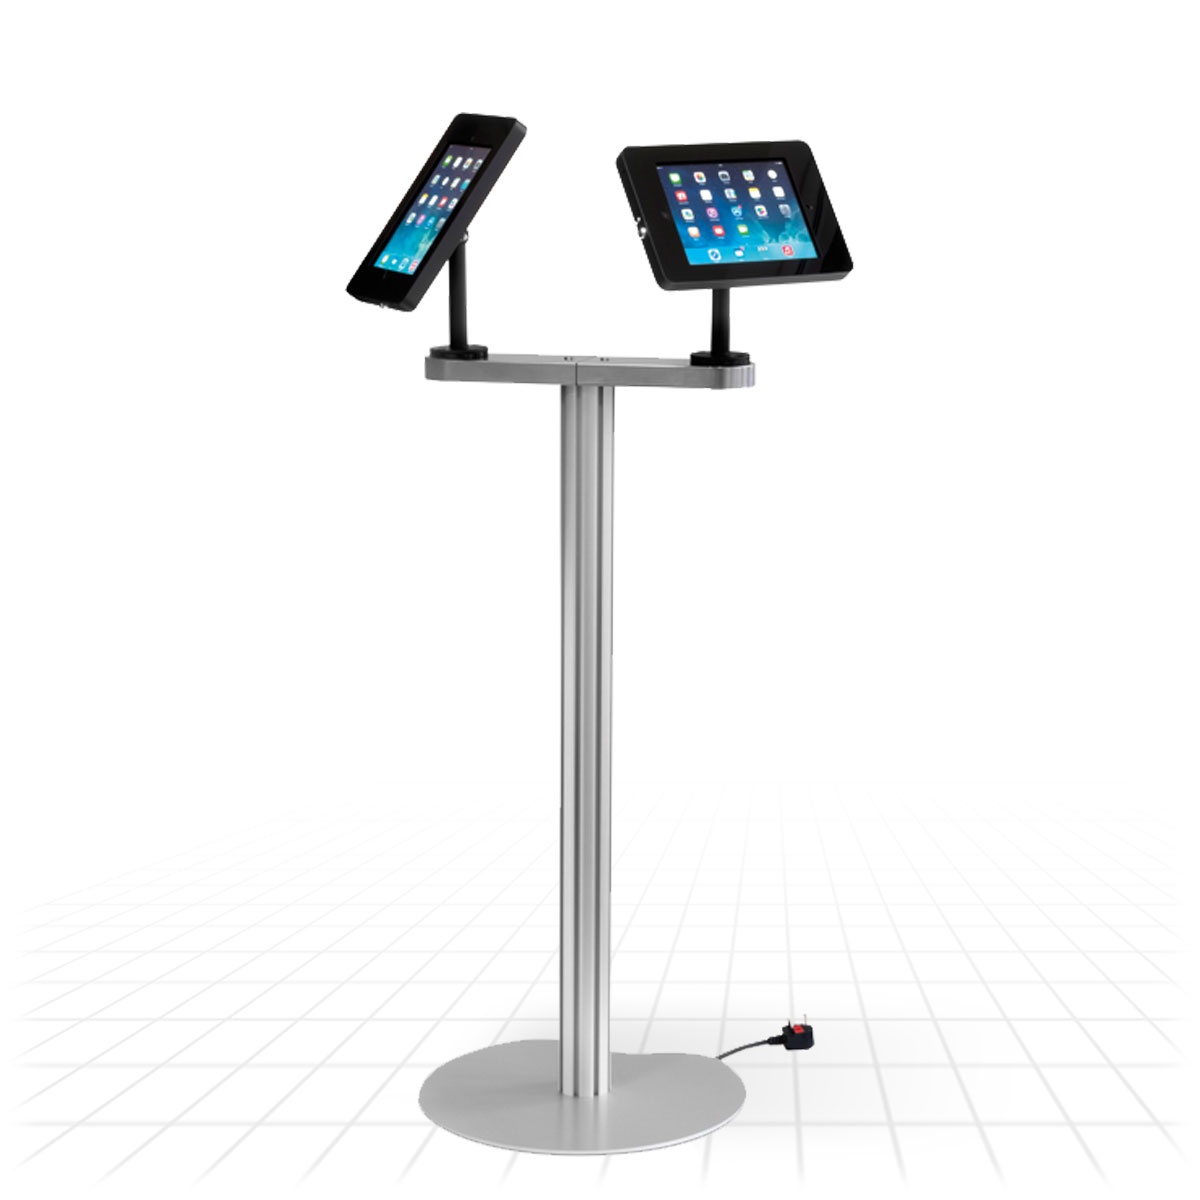 IPad Duo Display Stand Tablet Stands